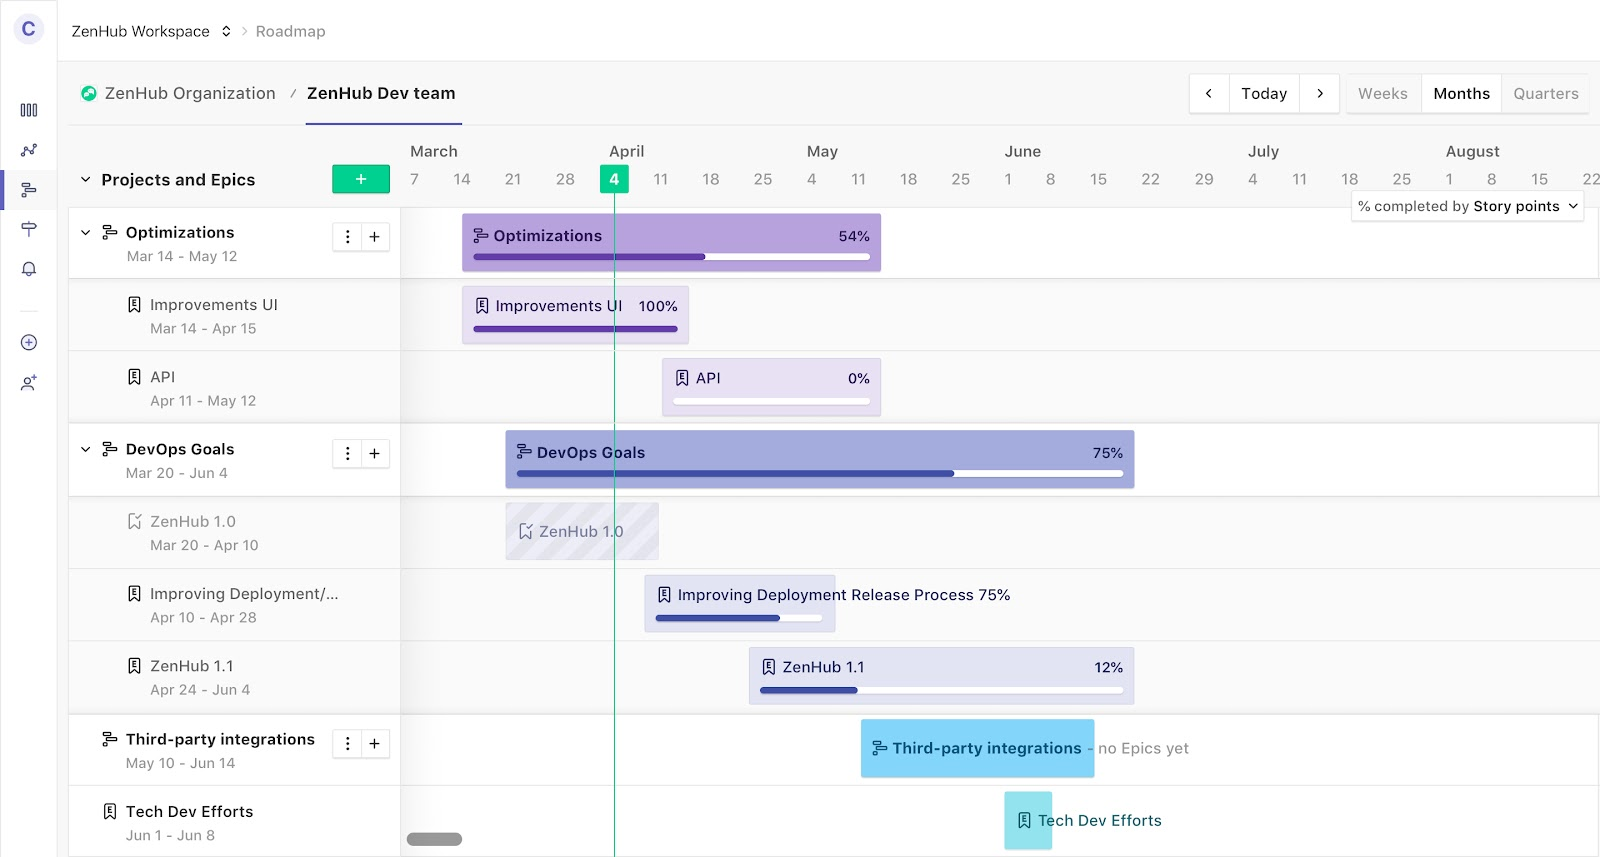 Releases-Driven Product Roadmap